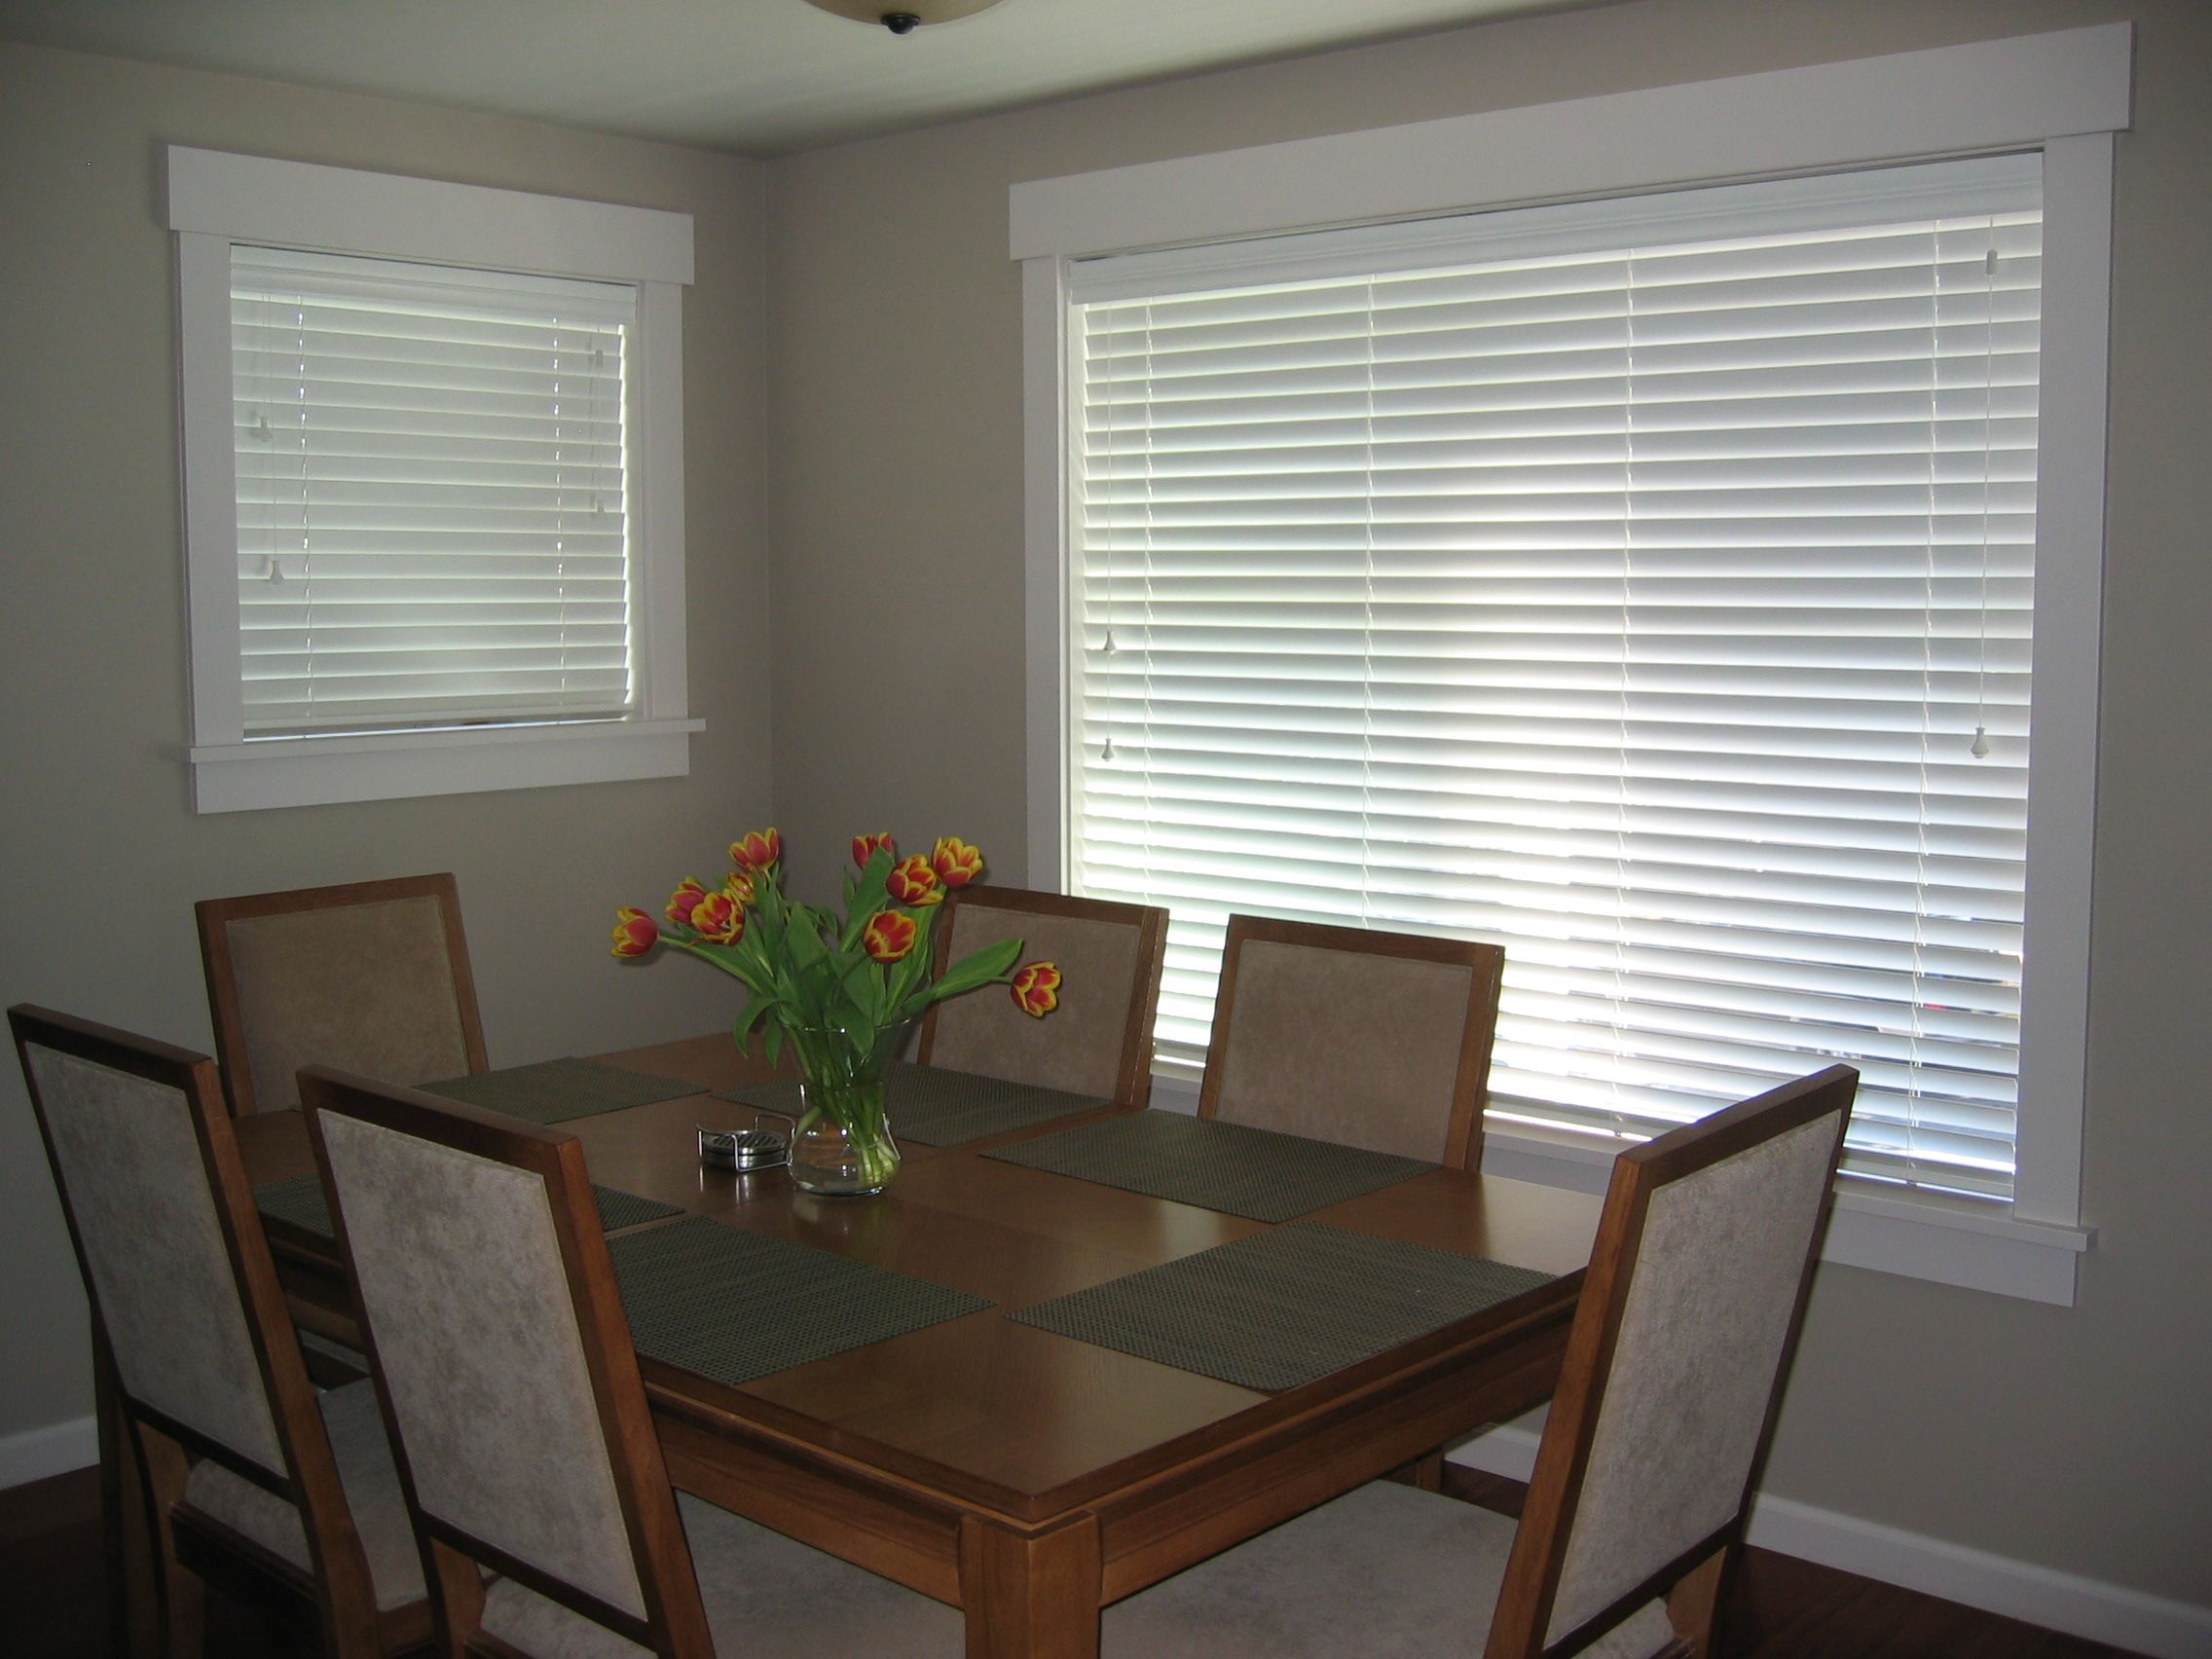 thick b custom white brands plastic louver shop a as shutters from interior wood window both of offers poly line and size the faux full leading jcpenney economy shades well blinds blind